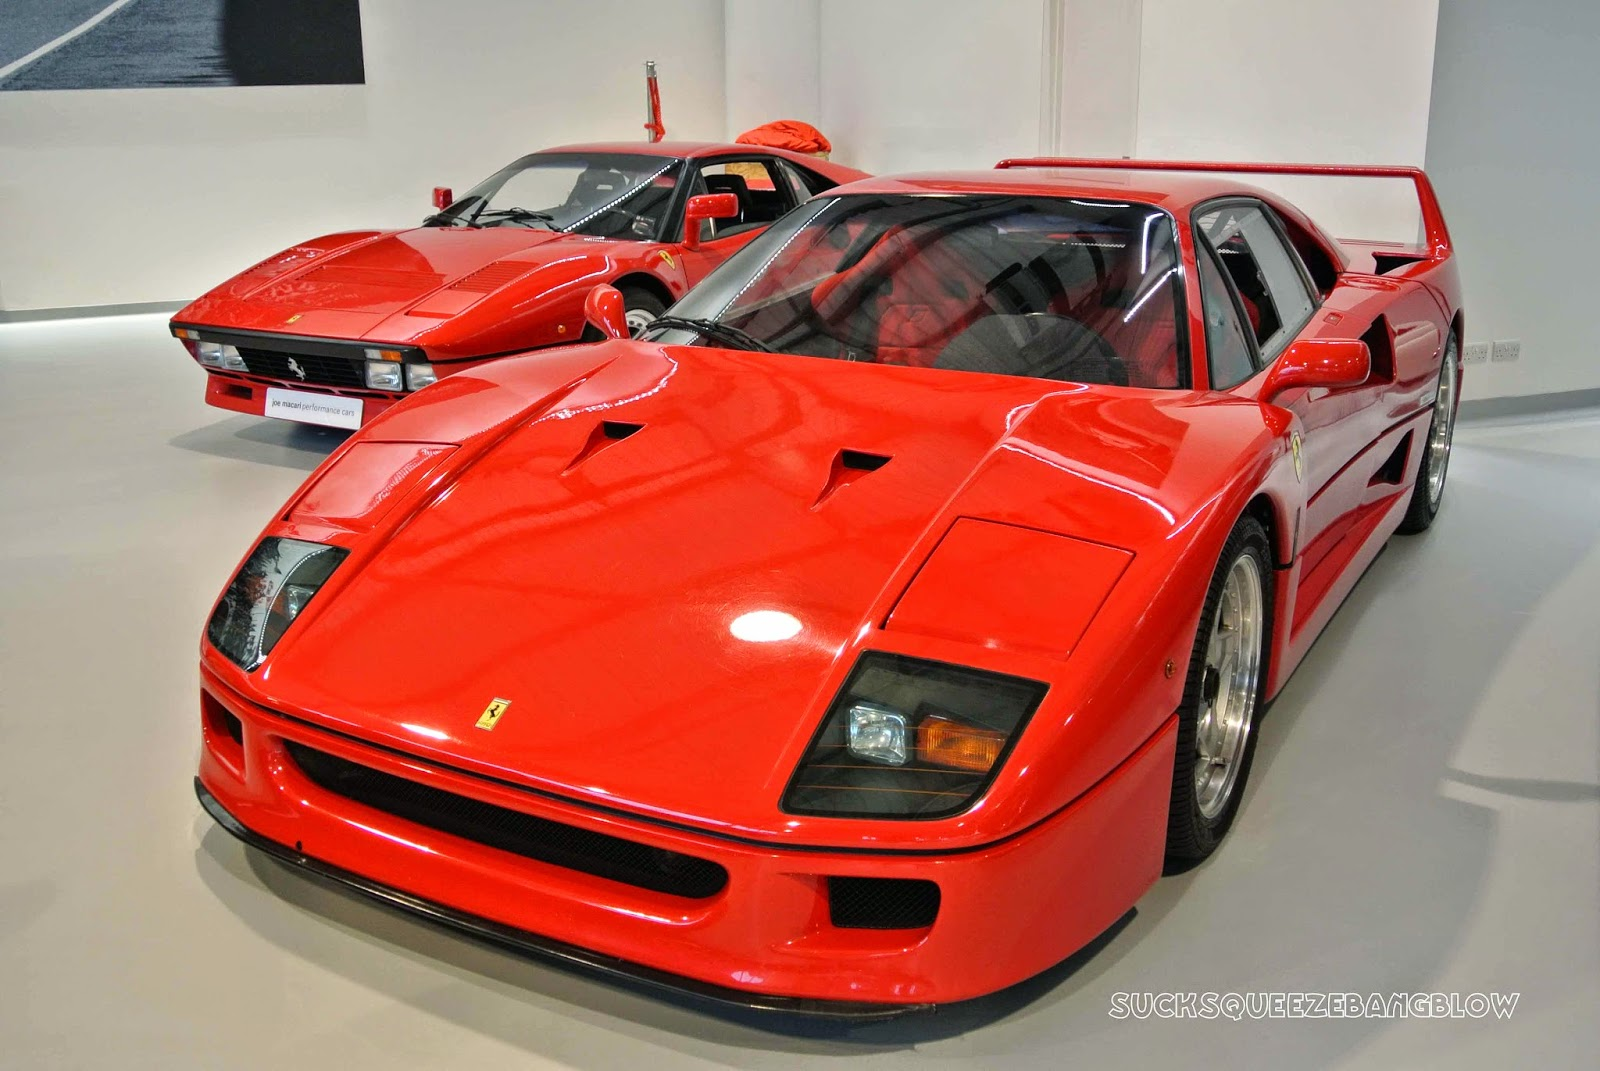 Sucksqueezebangblow 1987 ferrari f40 theres not a lot to say about the f40 that hasnt been said a million times before the archetypal 1980s supercar poster boy it was enzos last sign off vanachro Choice Image